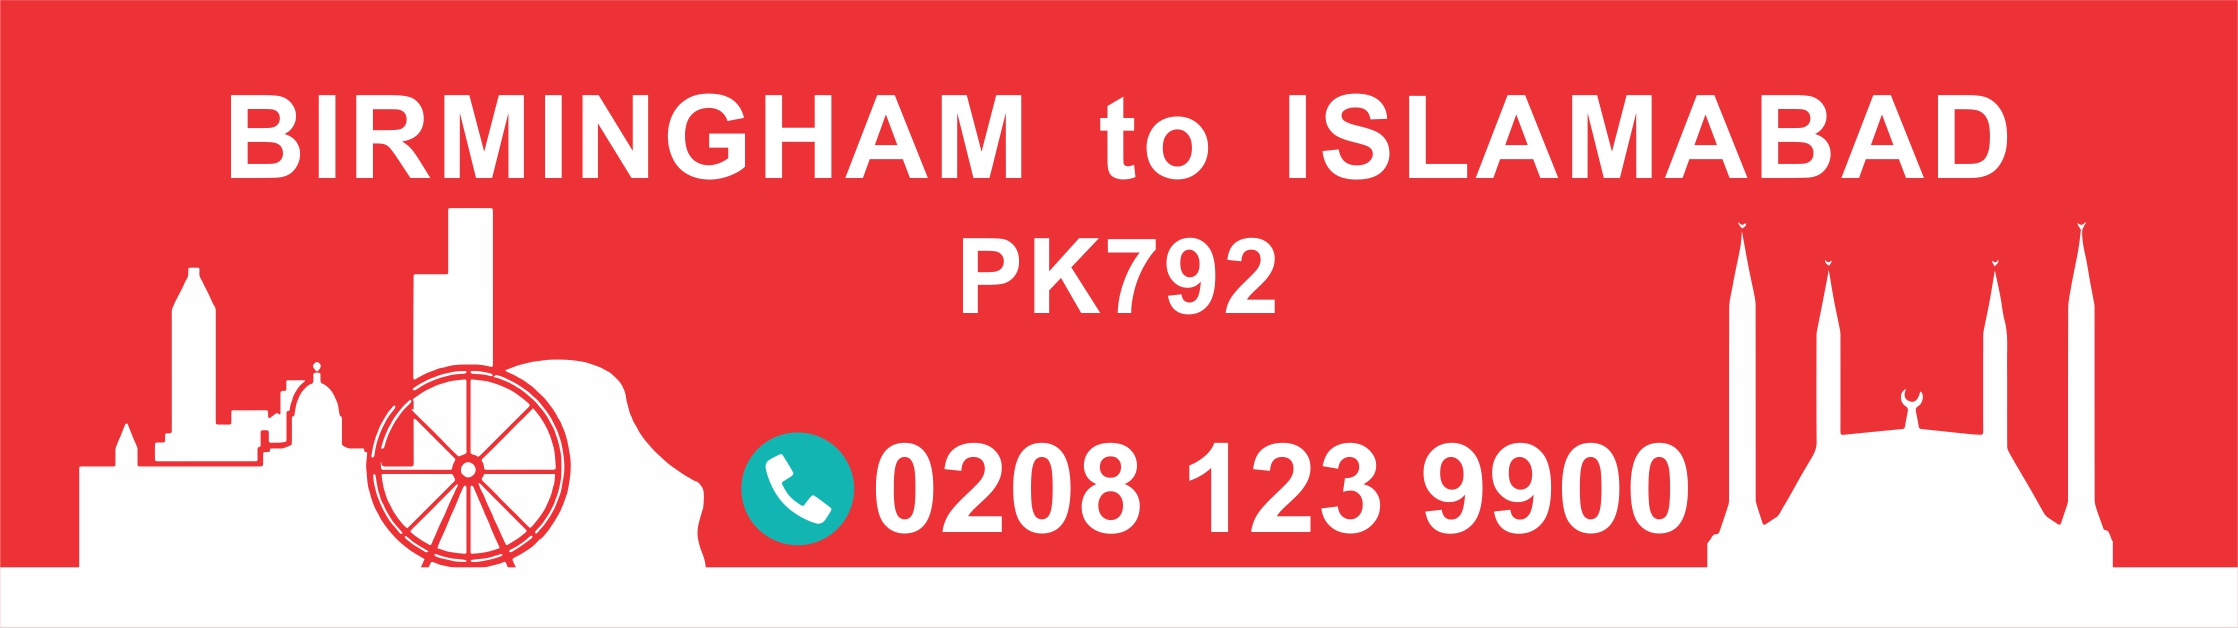 Birmingham to Islamabad PIA Flight PK792 Departure Time